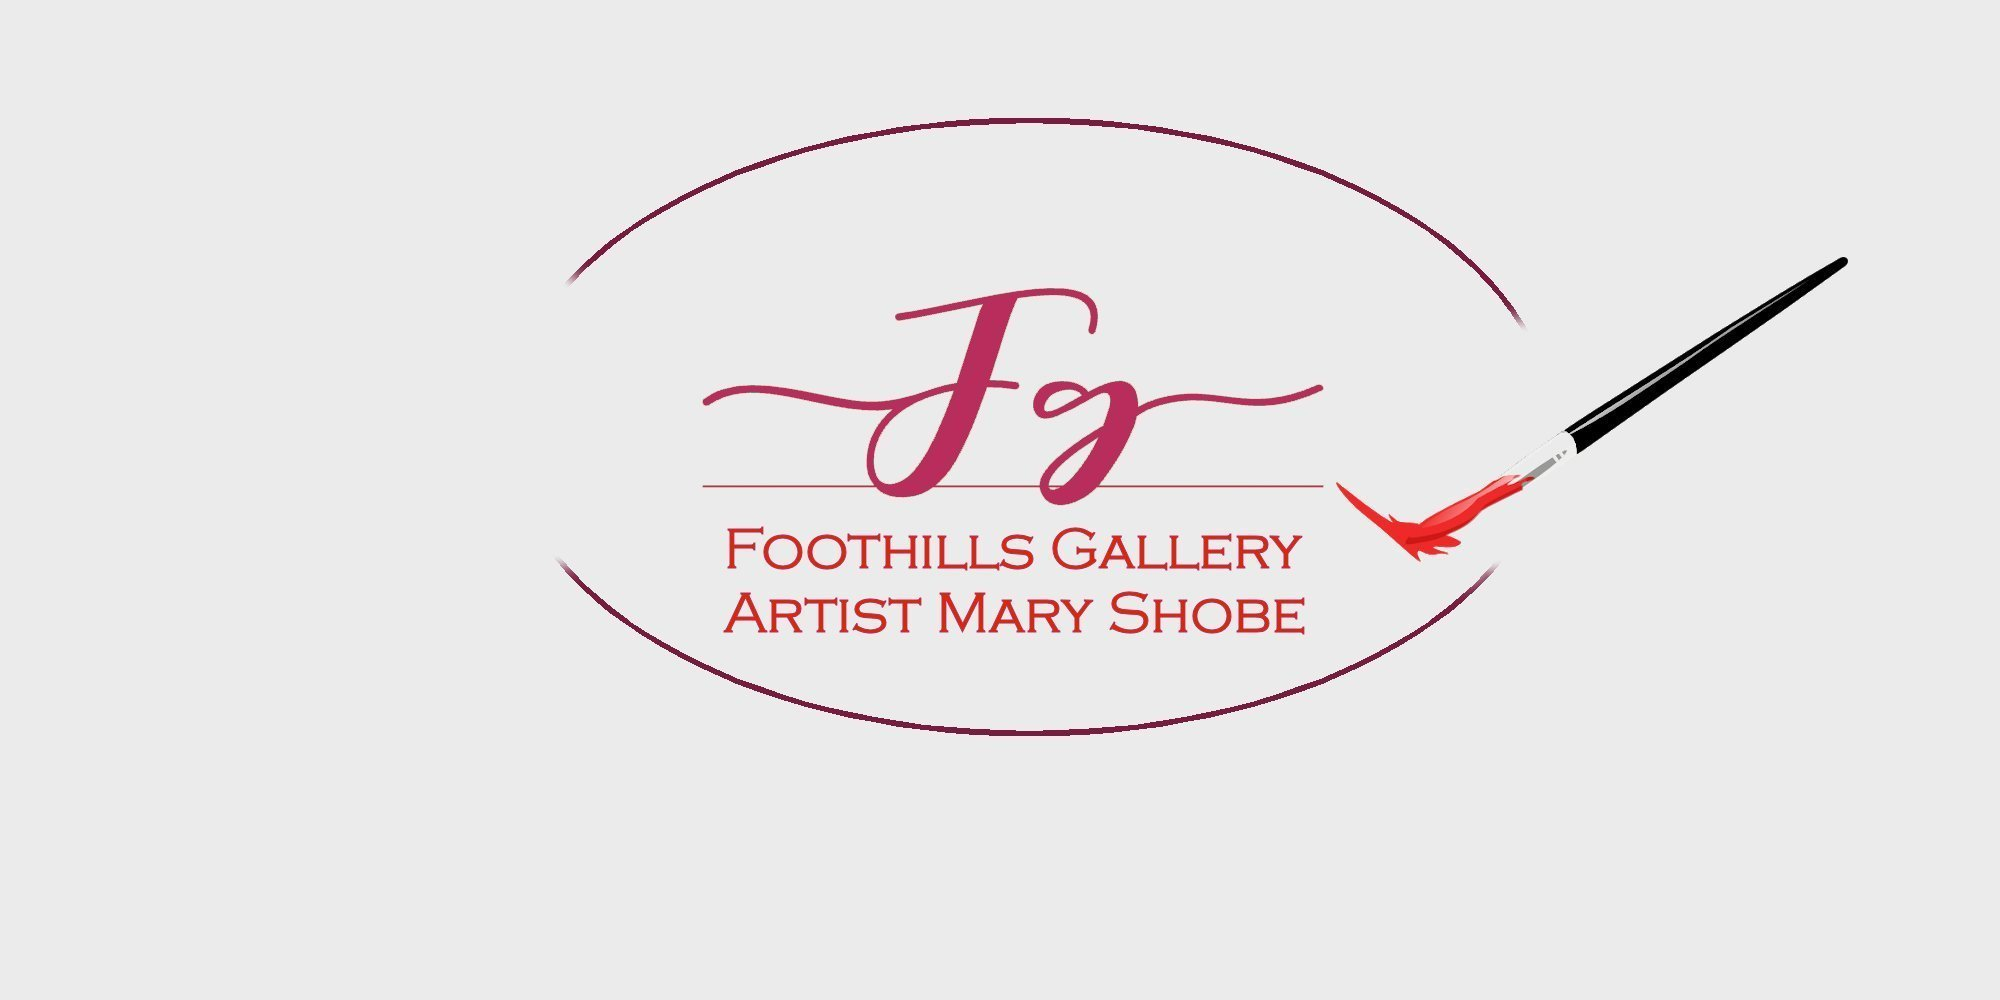 Foothills Gallery